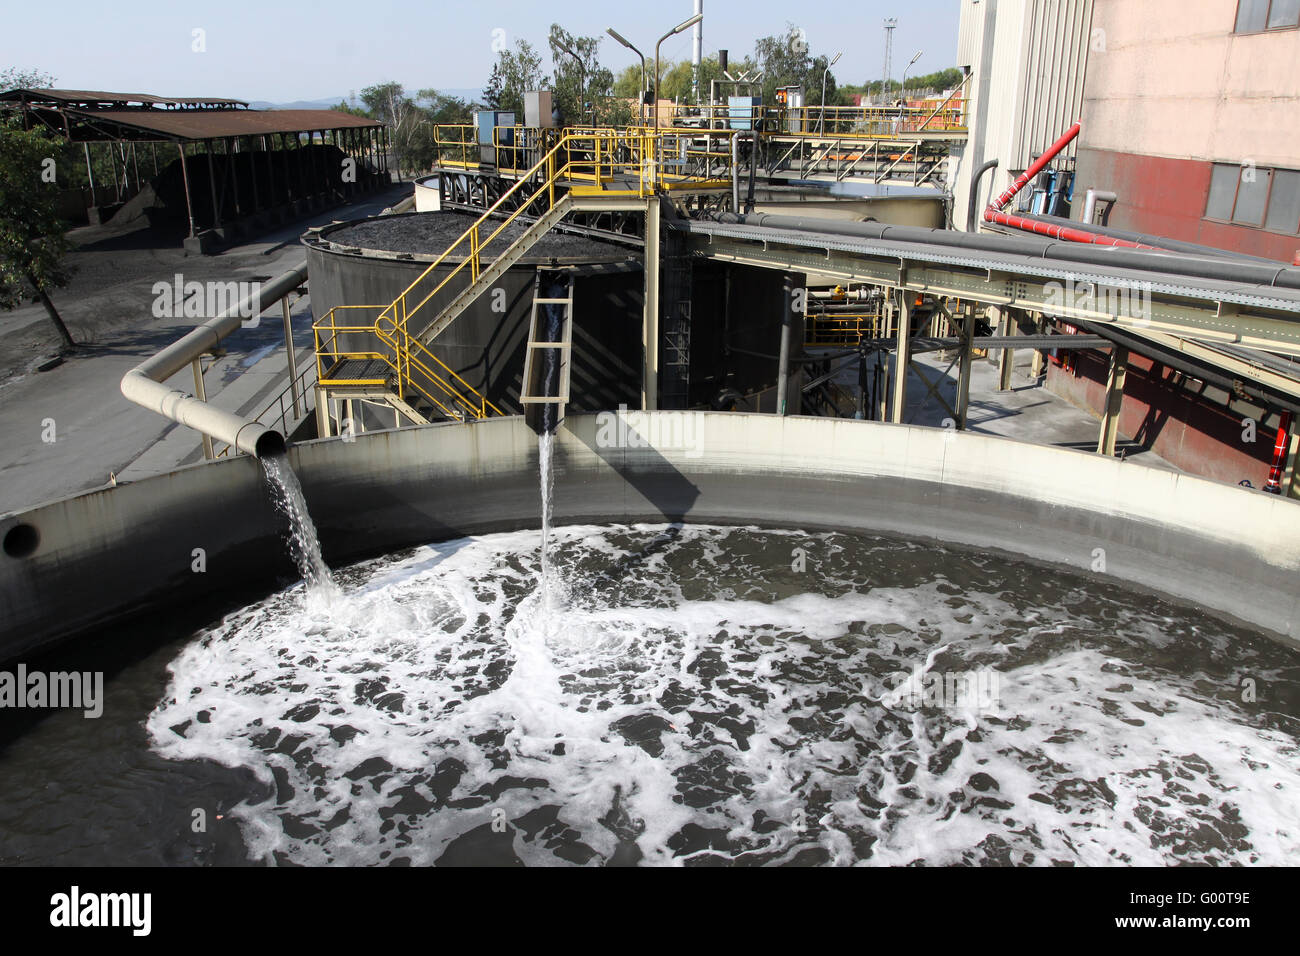 Water treatment plant with dirty sludge - Stock Image